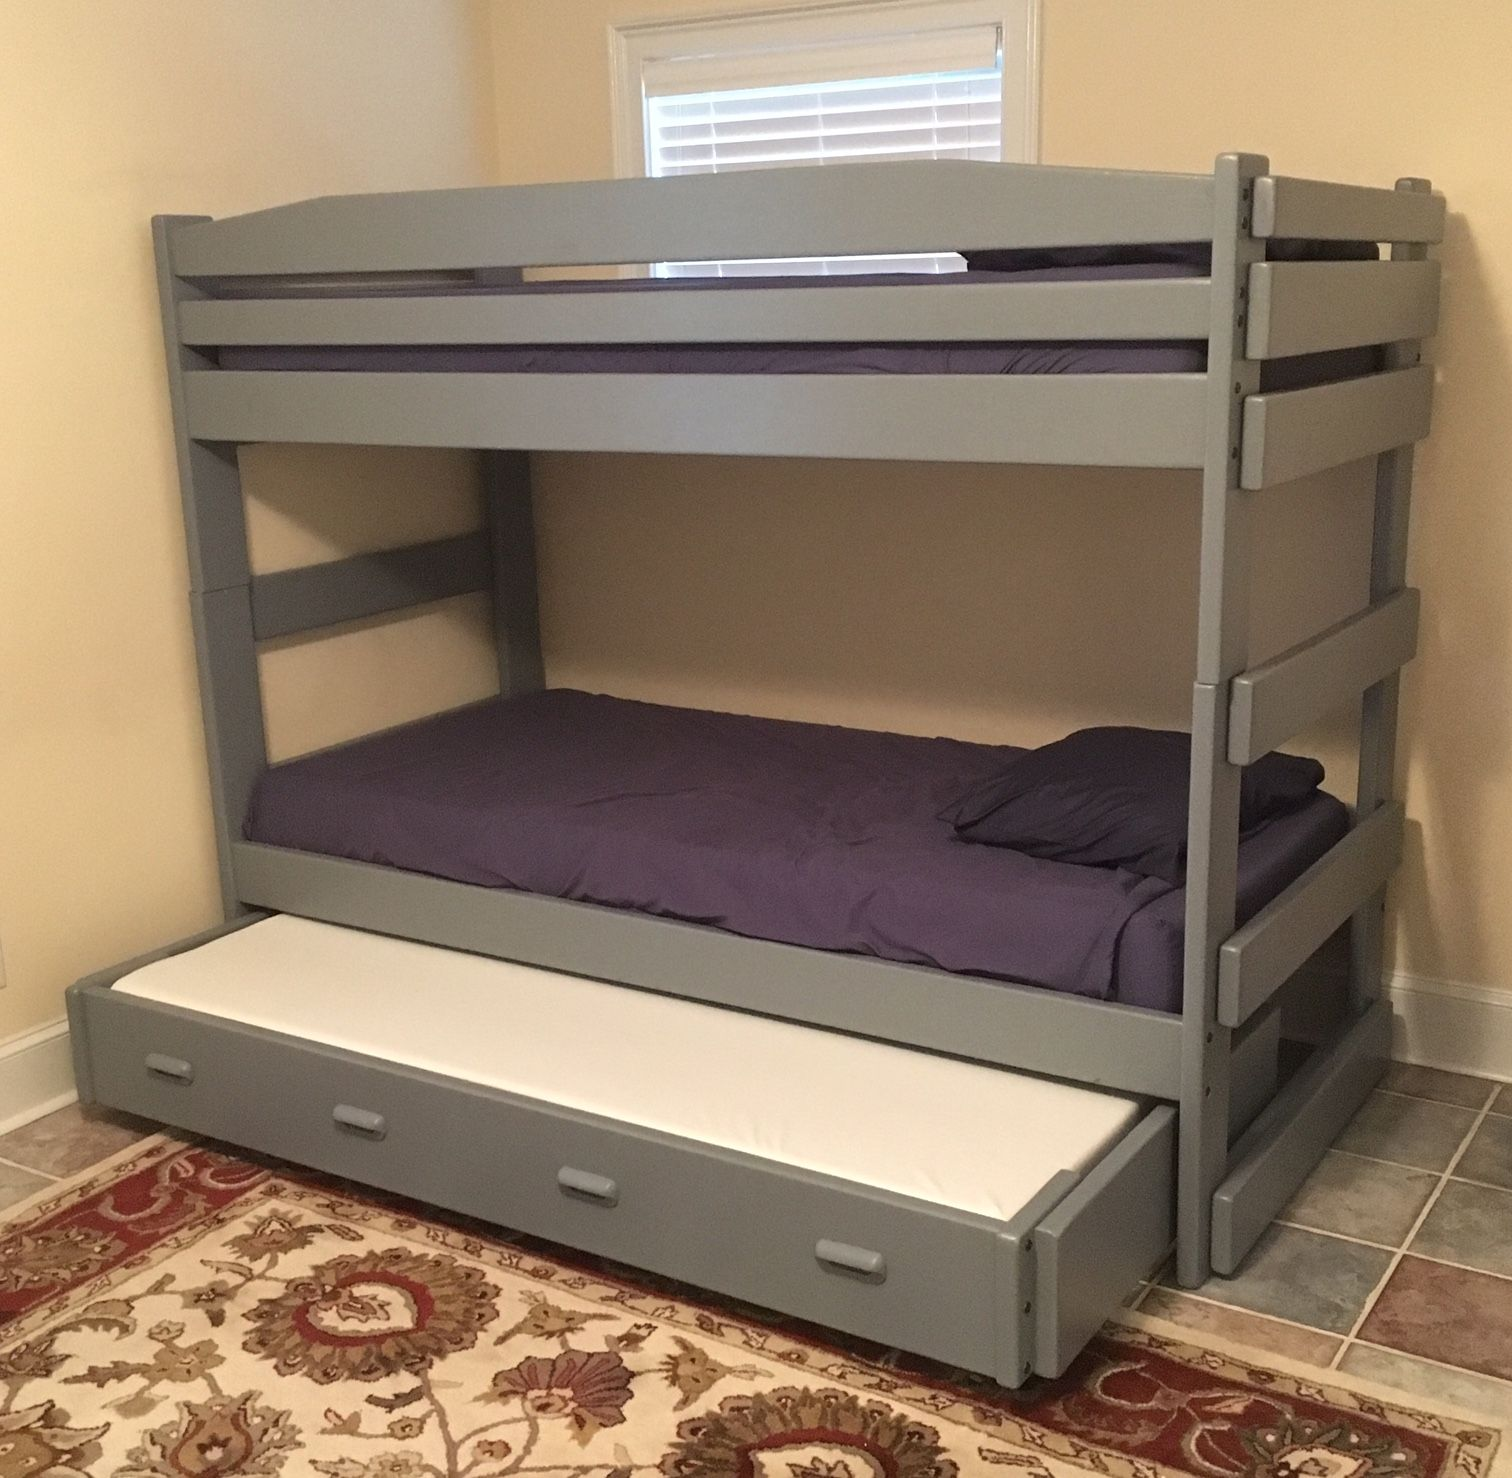 Stackable Twin Beds Pin By Paula Felker On Bunk Bed In 2019 Bunk Bed With Trundle